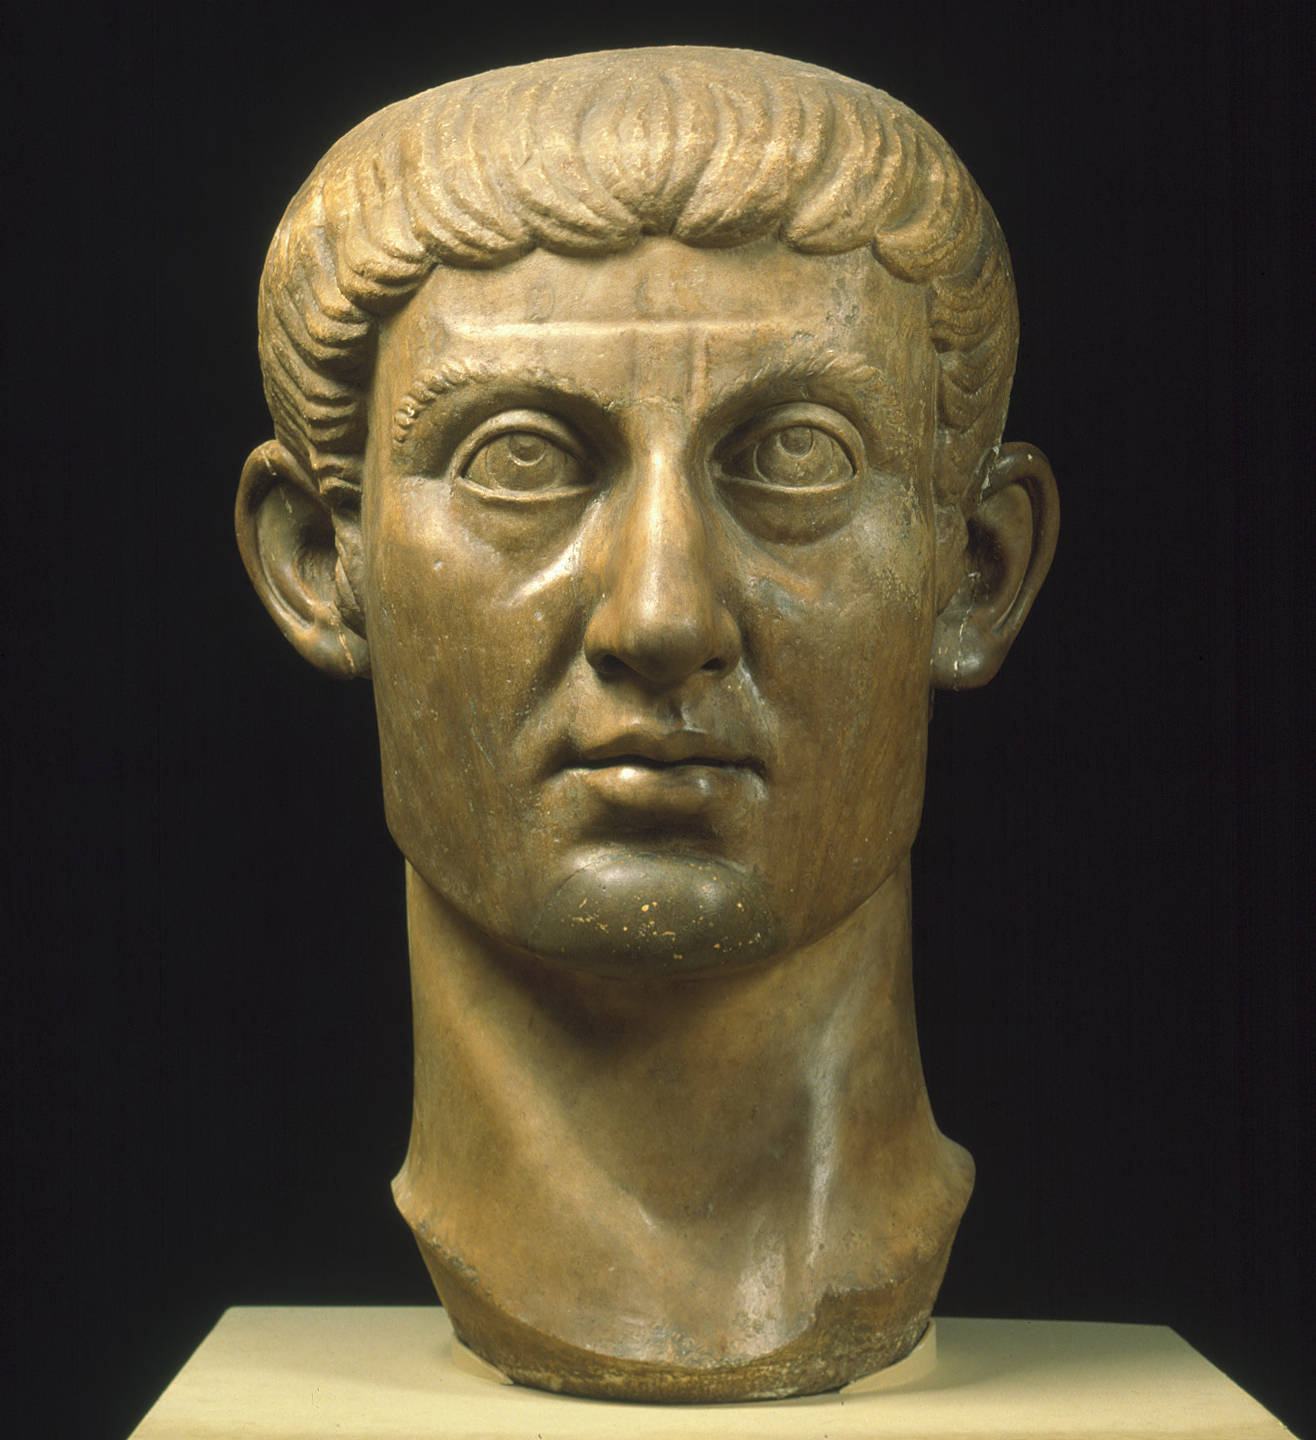 Stone carving of head of the emperor Constantine I